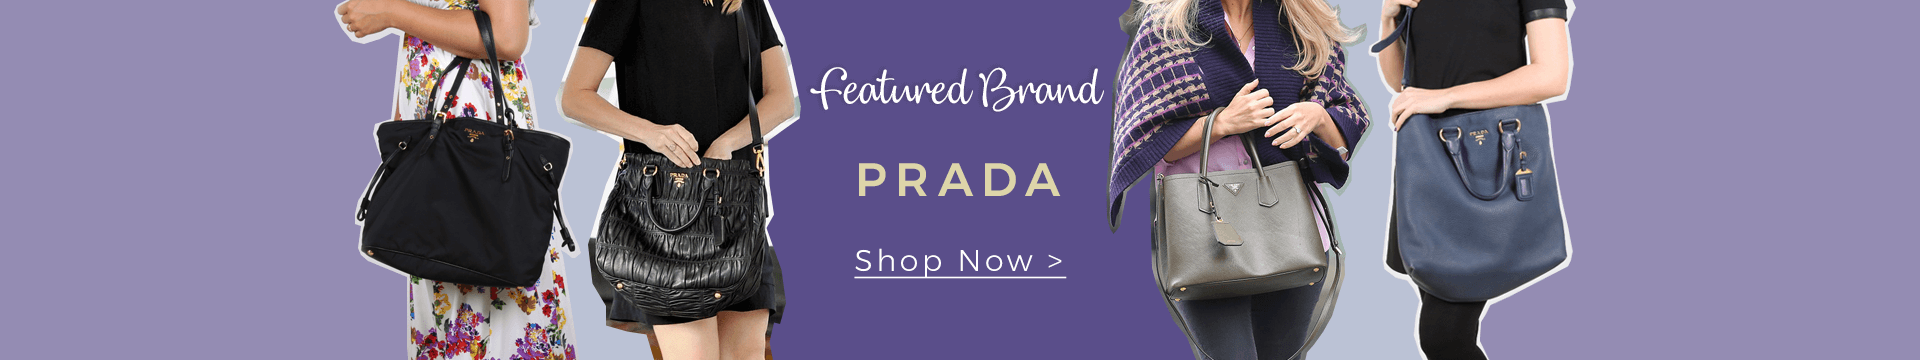 1540956634_0_MP_Web-Slider-Featured-Prada1.png